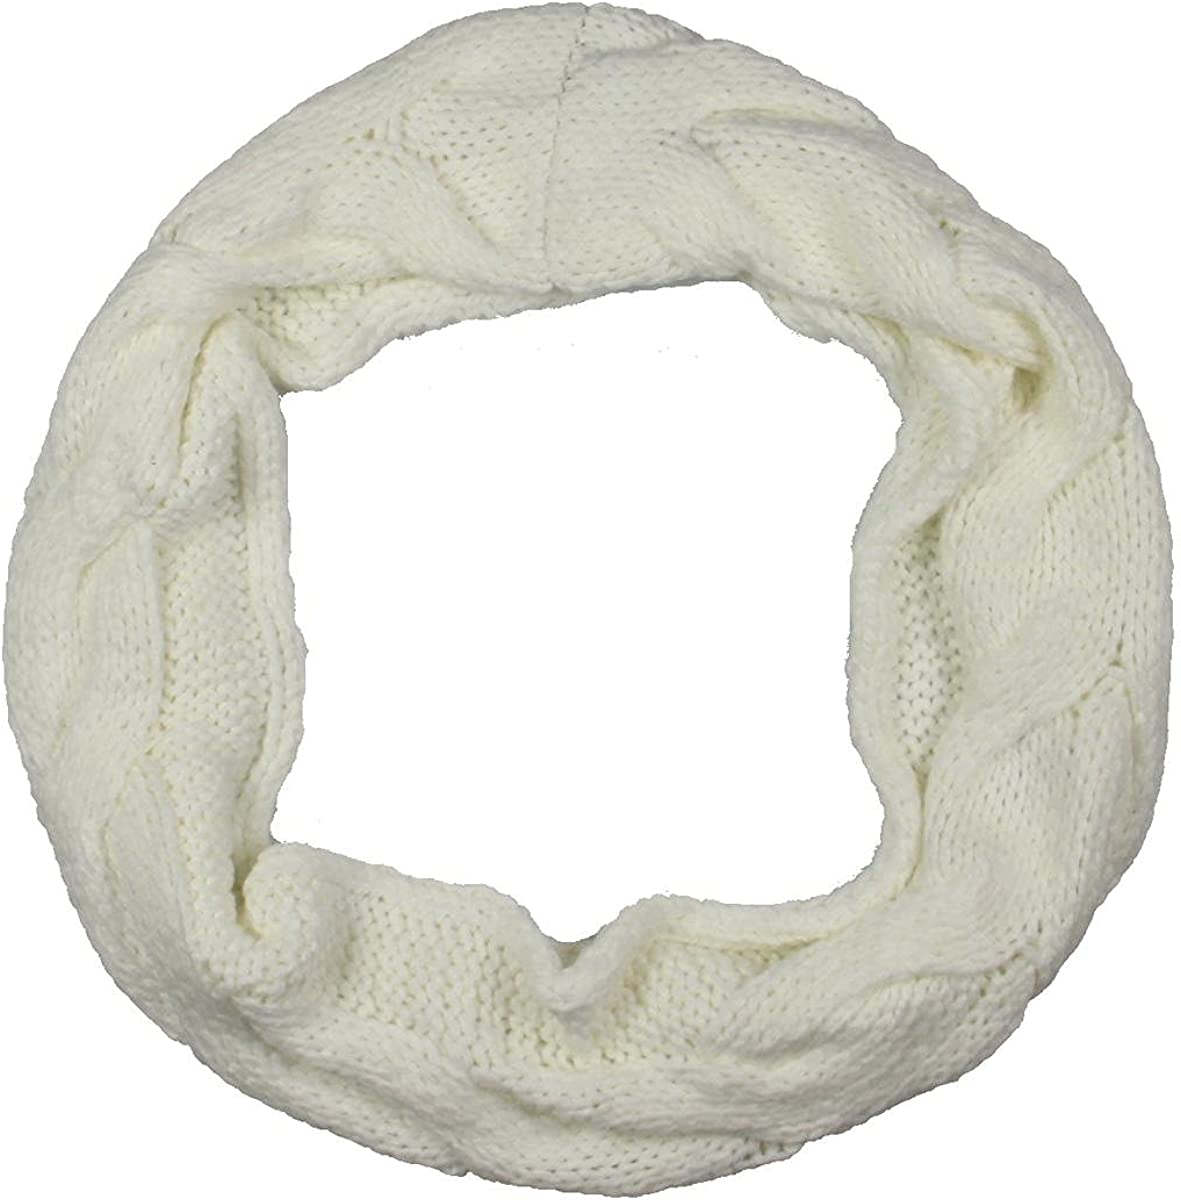 BCBGMAXAZRIA Womens Loop Cold Weather Infinity Scarf